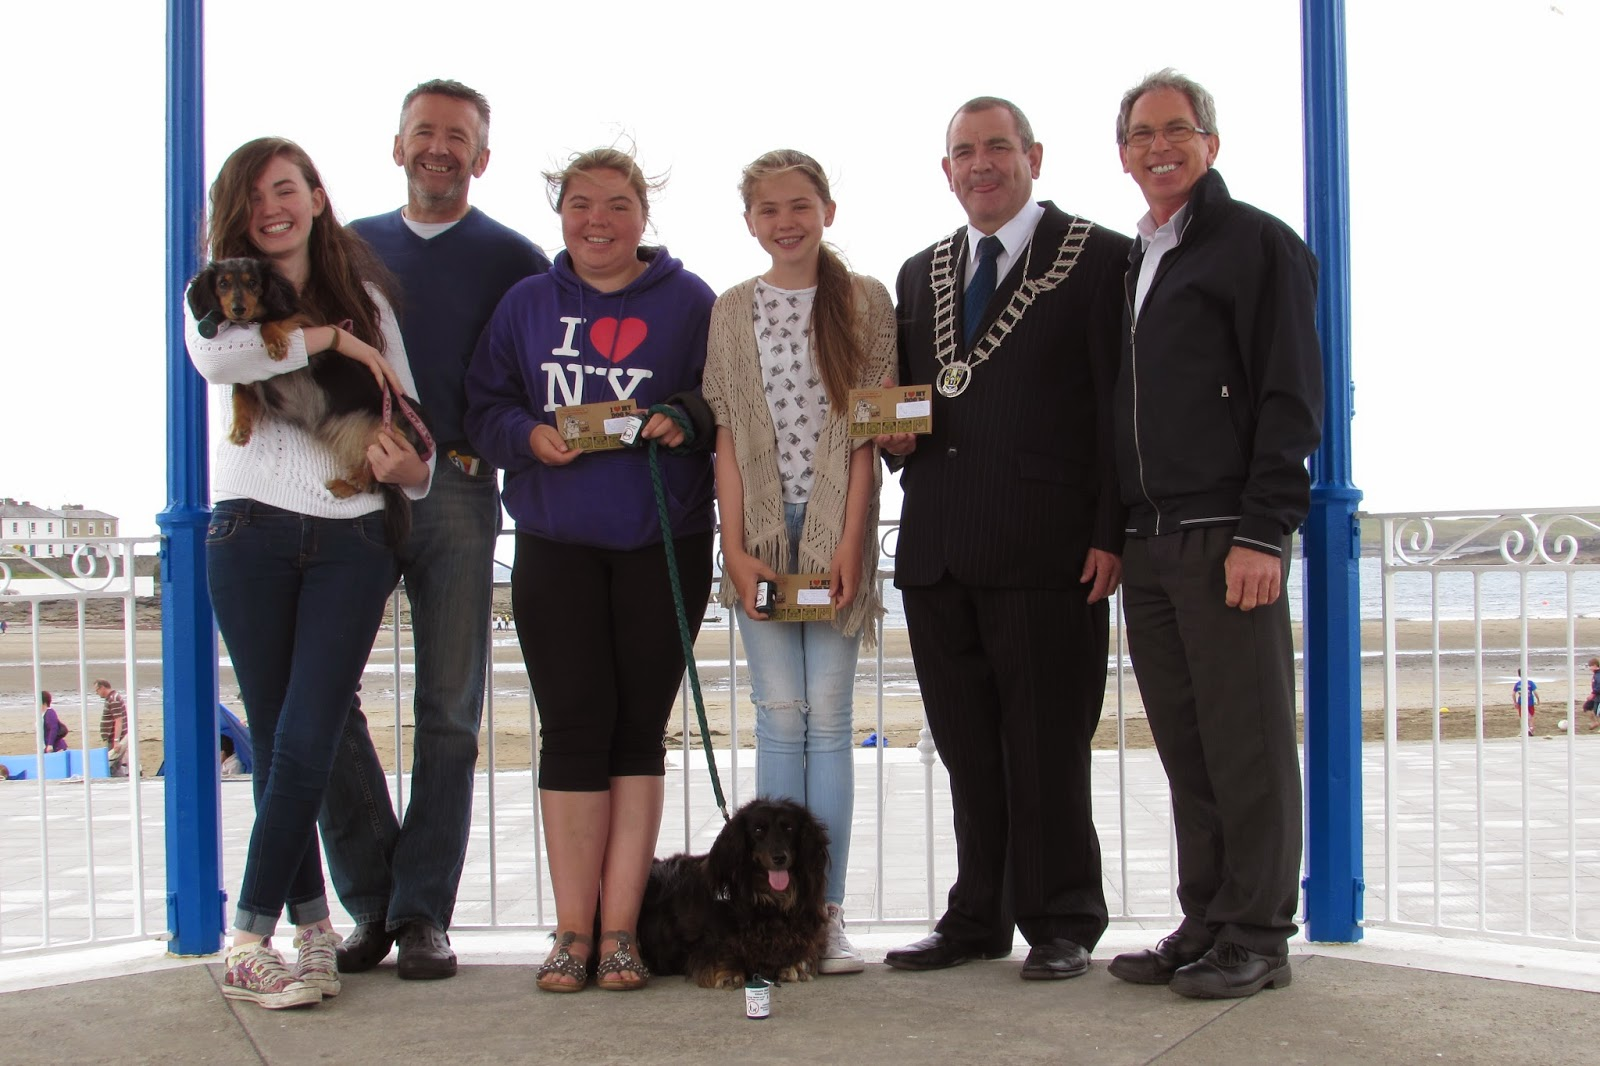 Audio devices to help curb dog fouling at Clare beaches